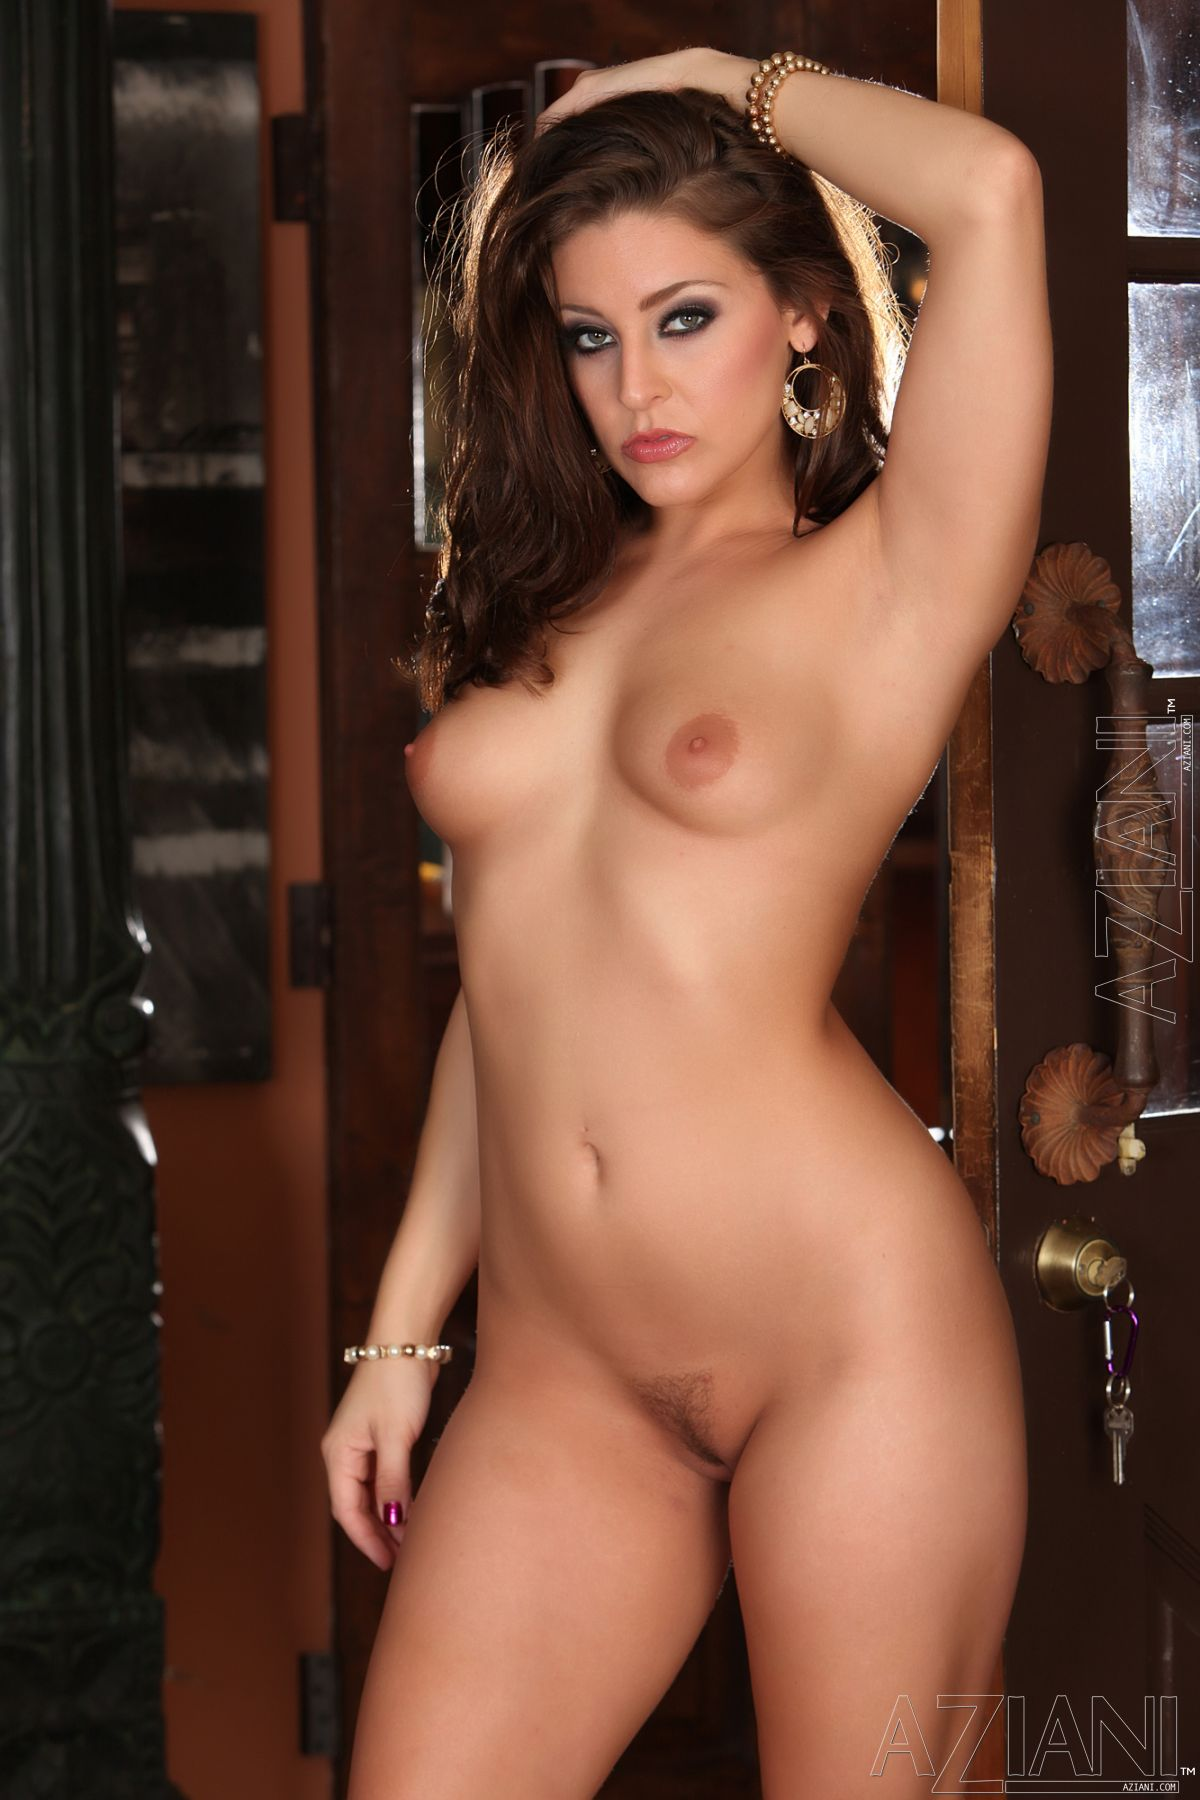 Glam Deluxe Galleries at YourDailyGirlscom